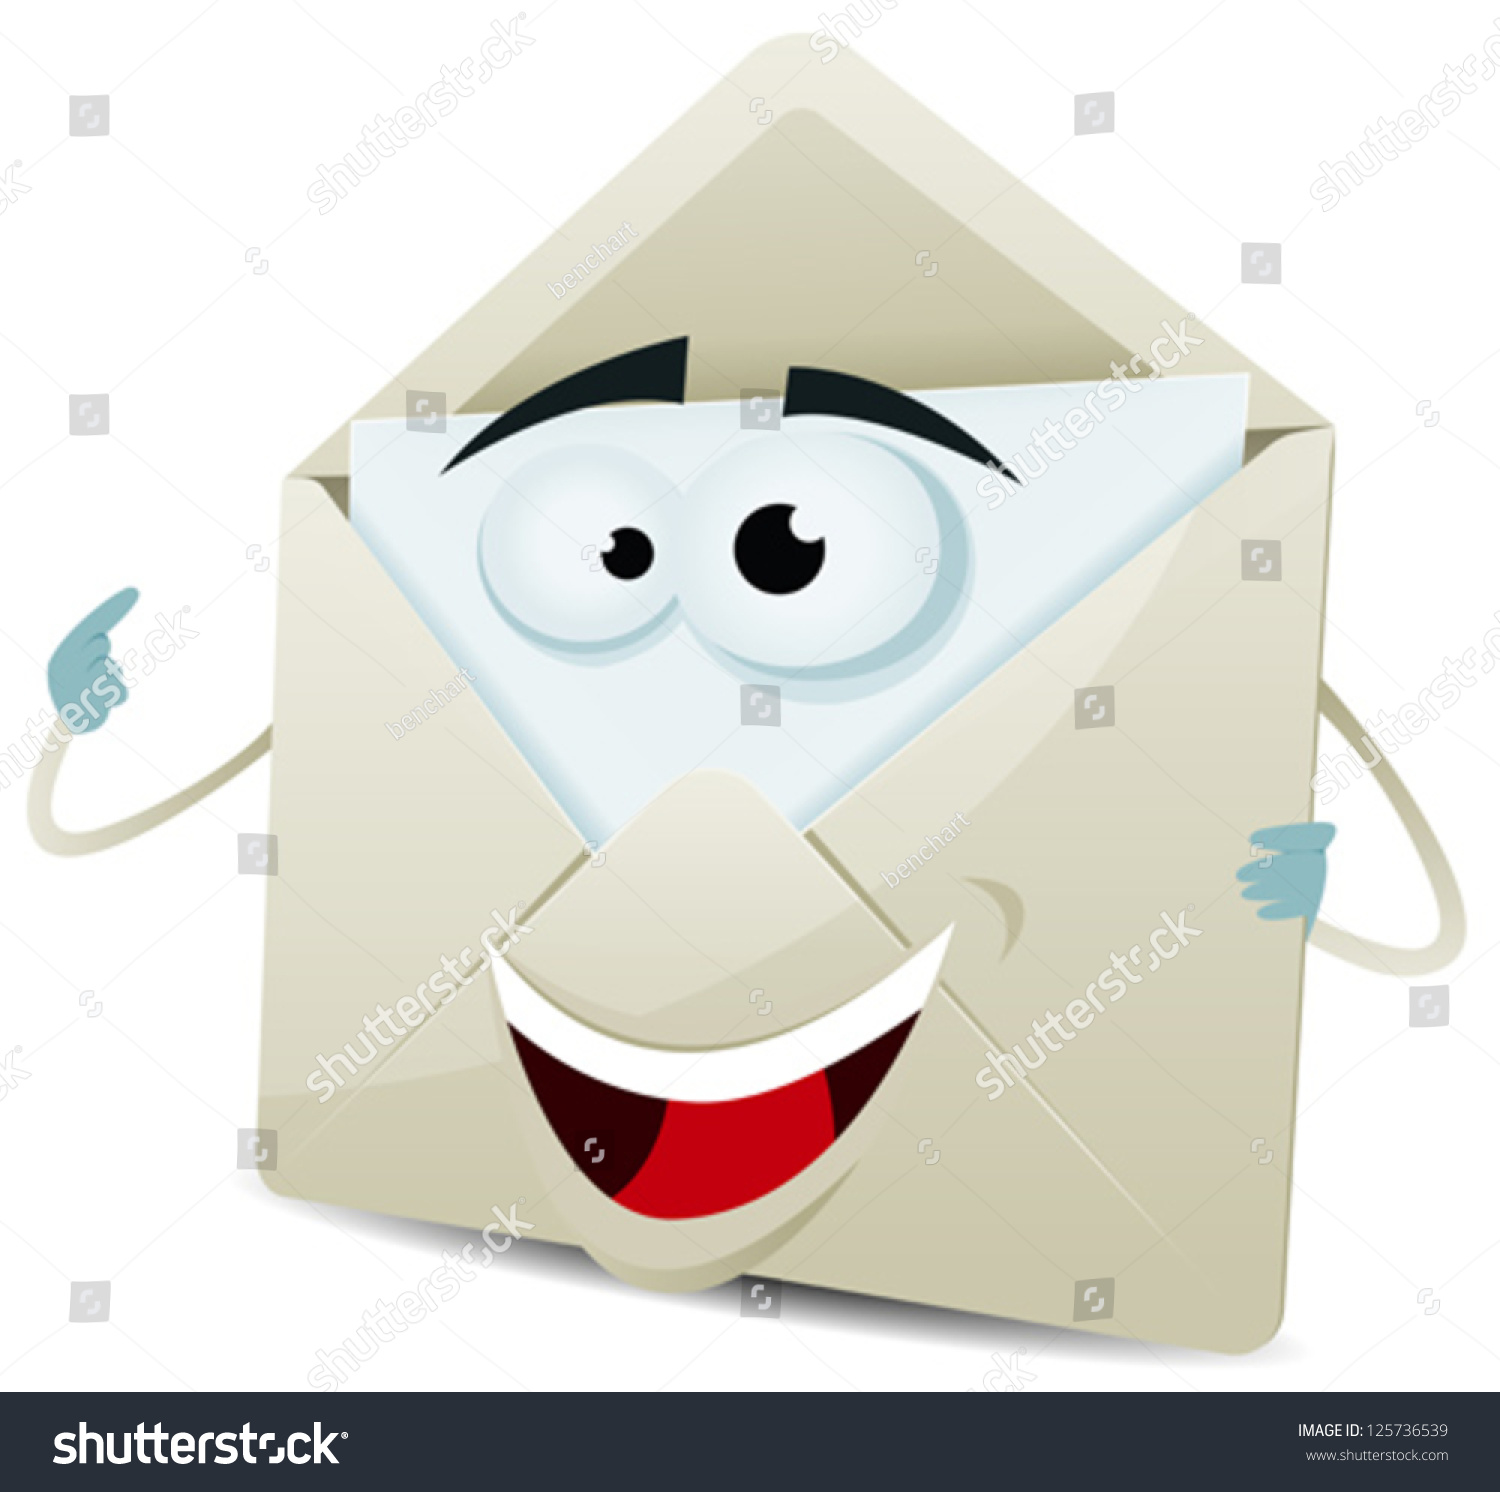 Background image email support - Cartoon Happy Email Character Illustration Of A Funny Cartoon Email Envelope Icon Character Over White